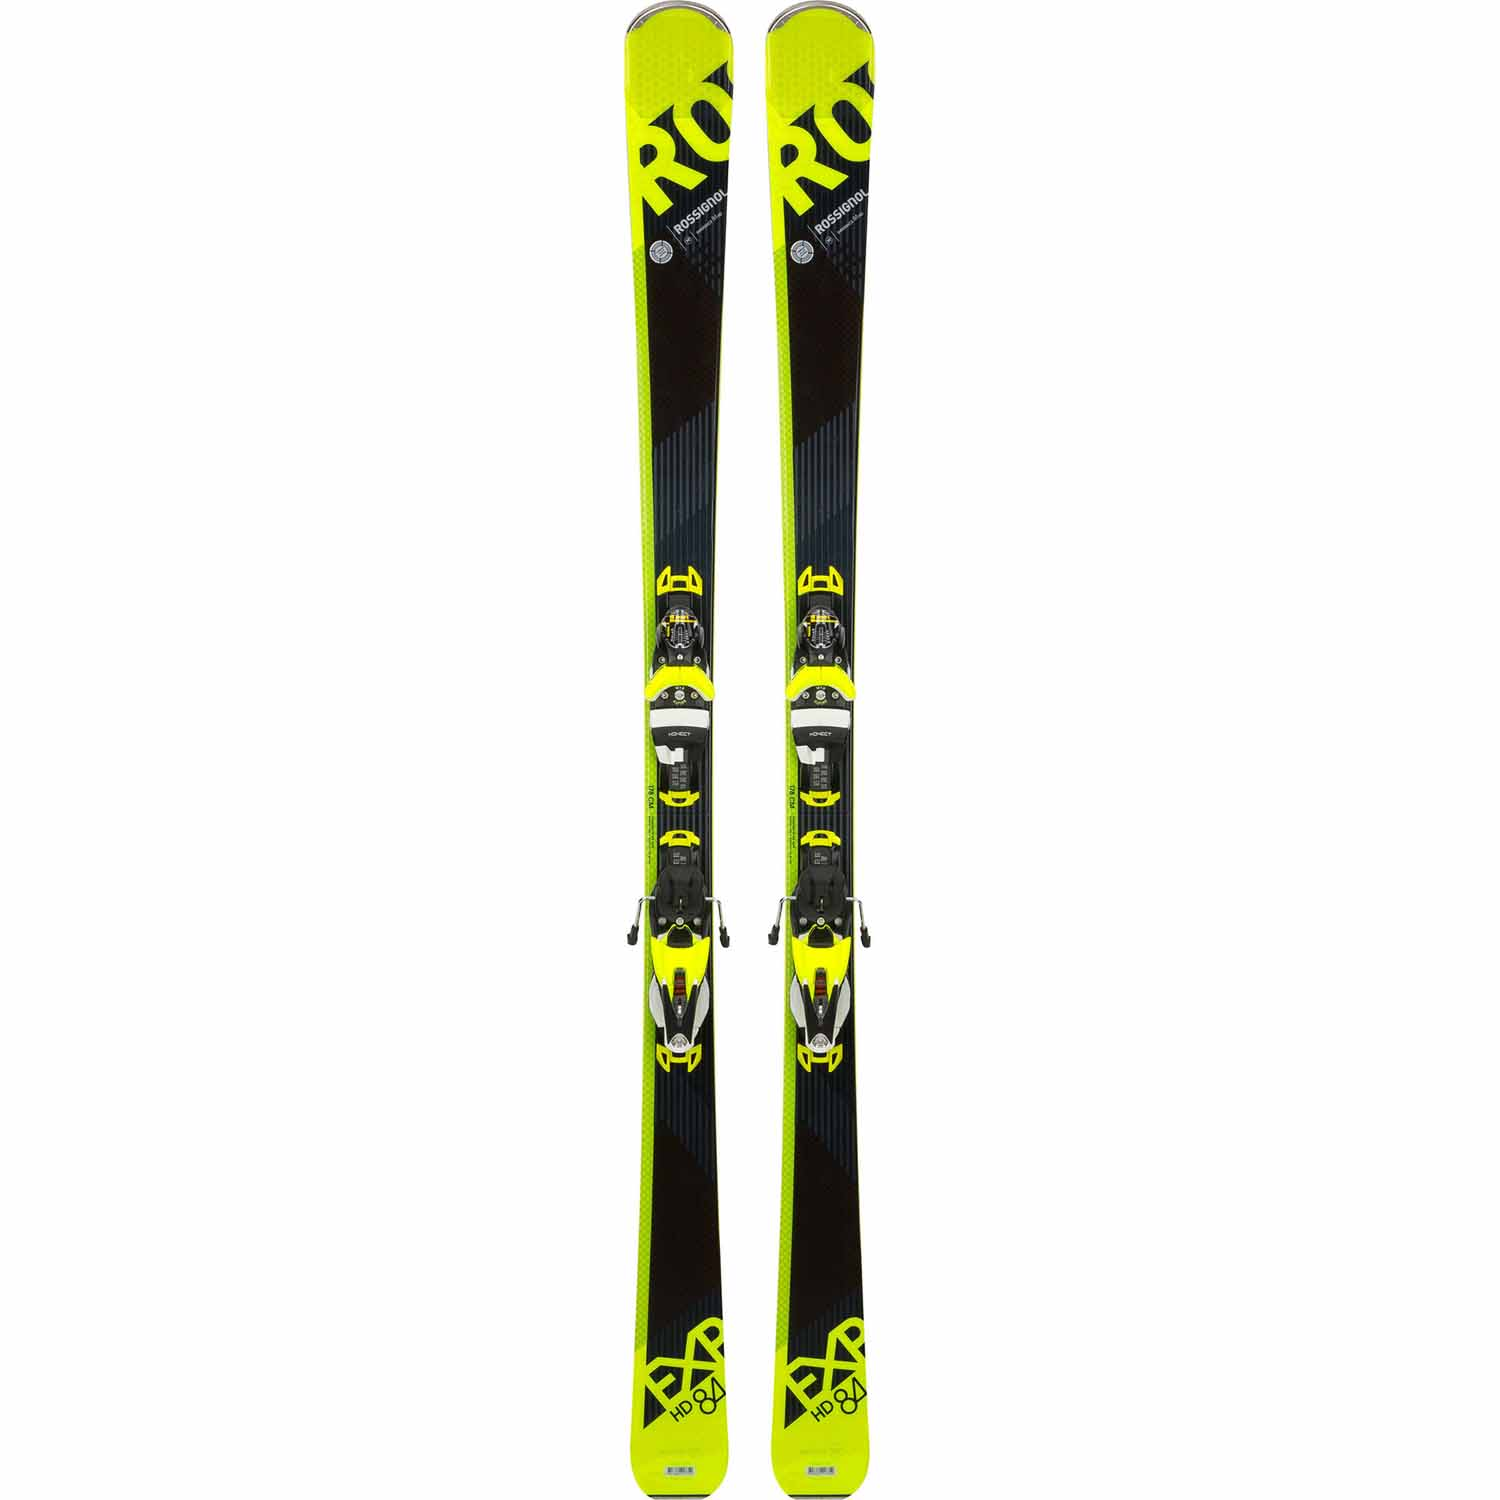 2017-18 Rossignol Experience 84 HD Ski With NX 12 Dual WTR Konect Binding